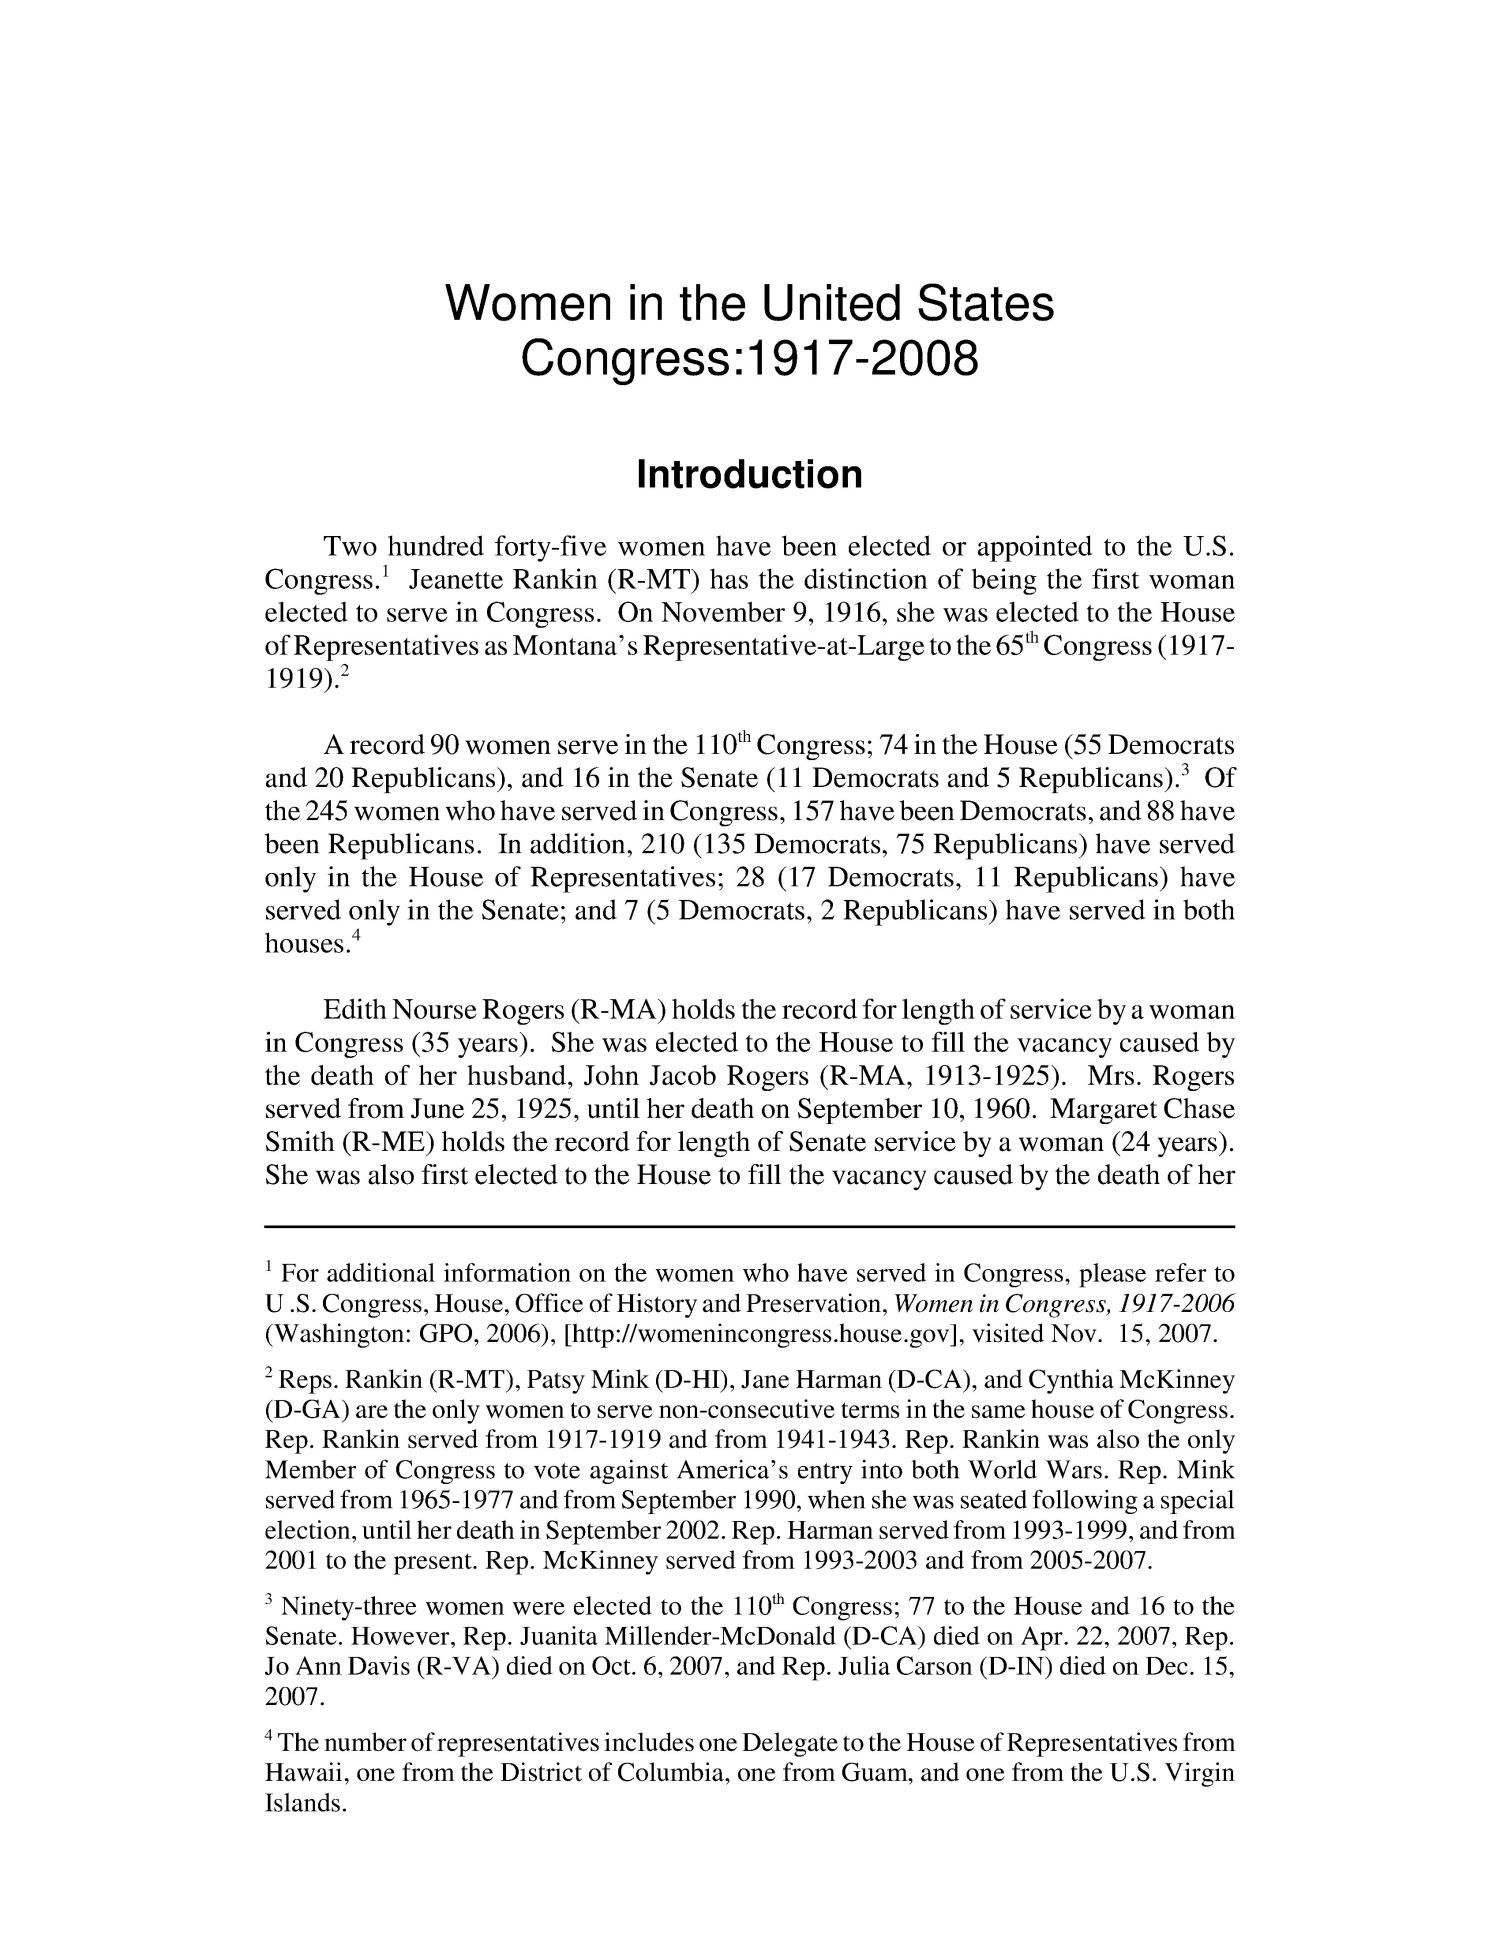 Women in the United States Congress: 1917-2008                                                                                                      [Sequence #]: 4 of 100